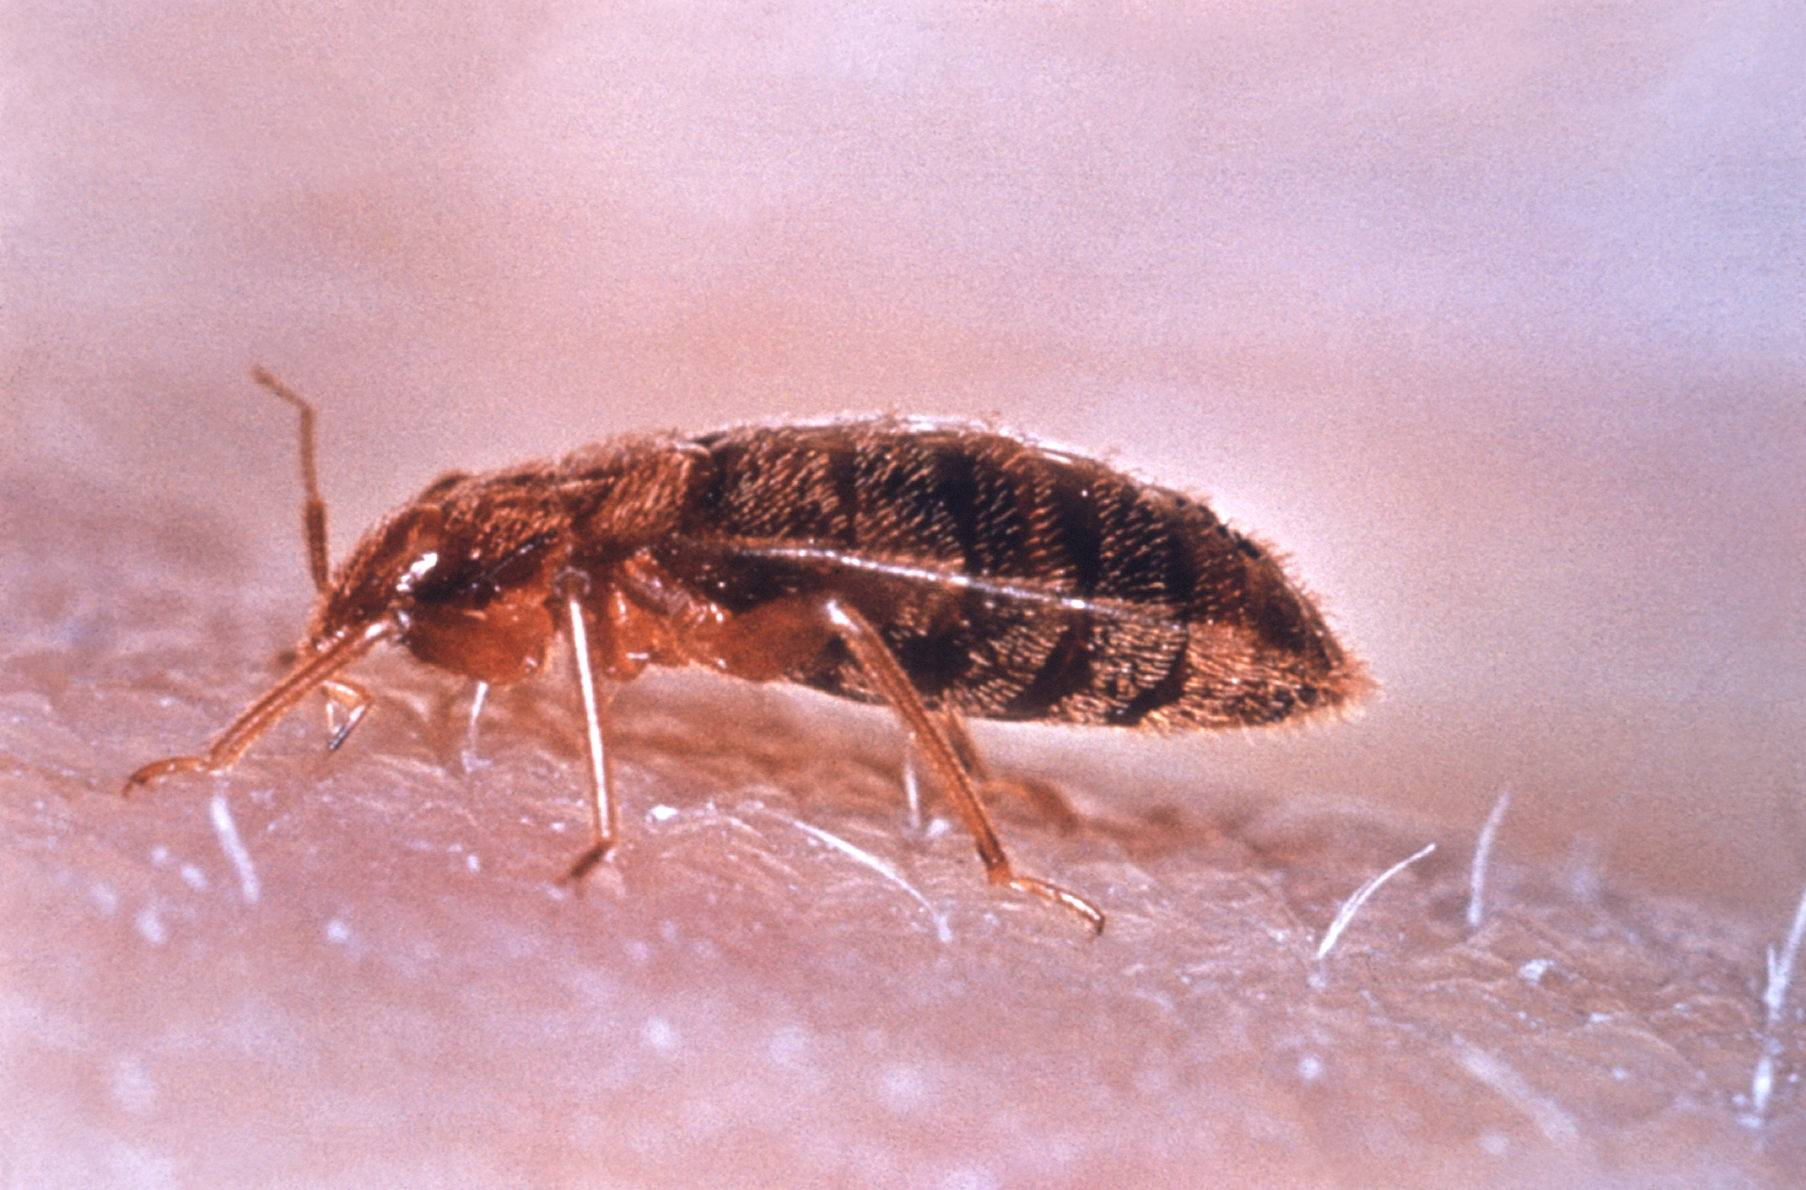 Very Impressive portraiture of Bed bugs more formally known as Cimex lectularius are now hanging  with #A83923 color and 1806x1190 pixels